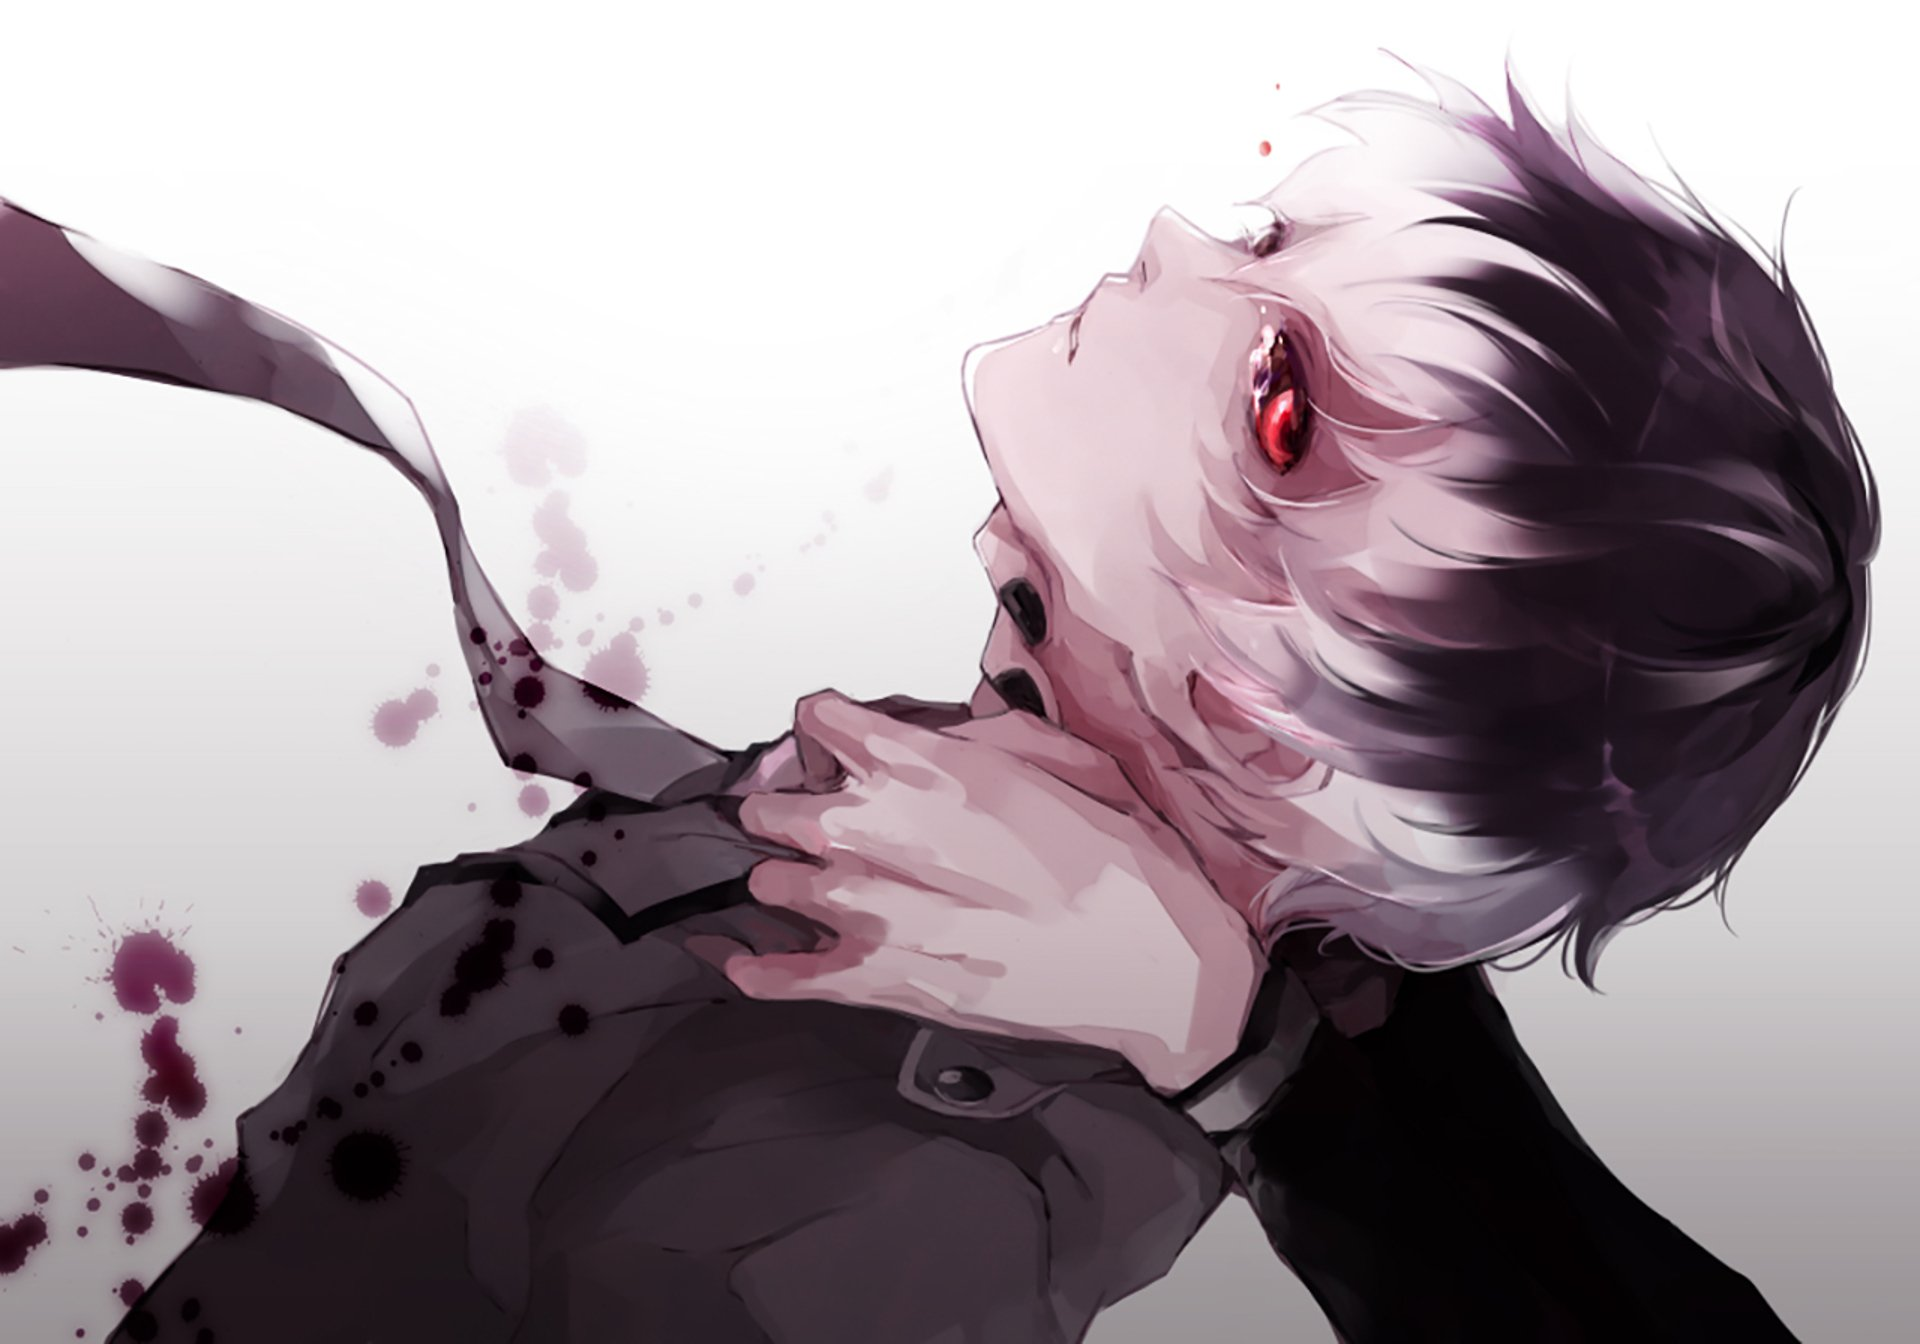 97 Haise Sasaki Hd Wallpapers Background Images Wallpaper Abyss